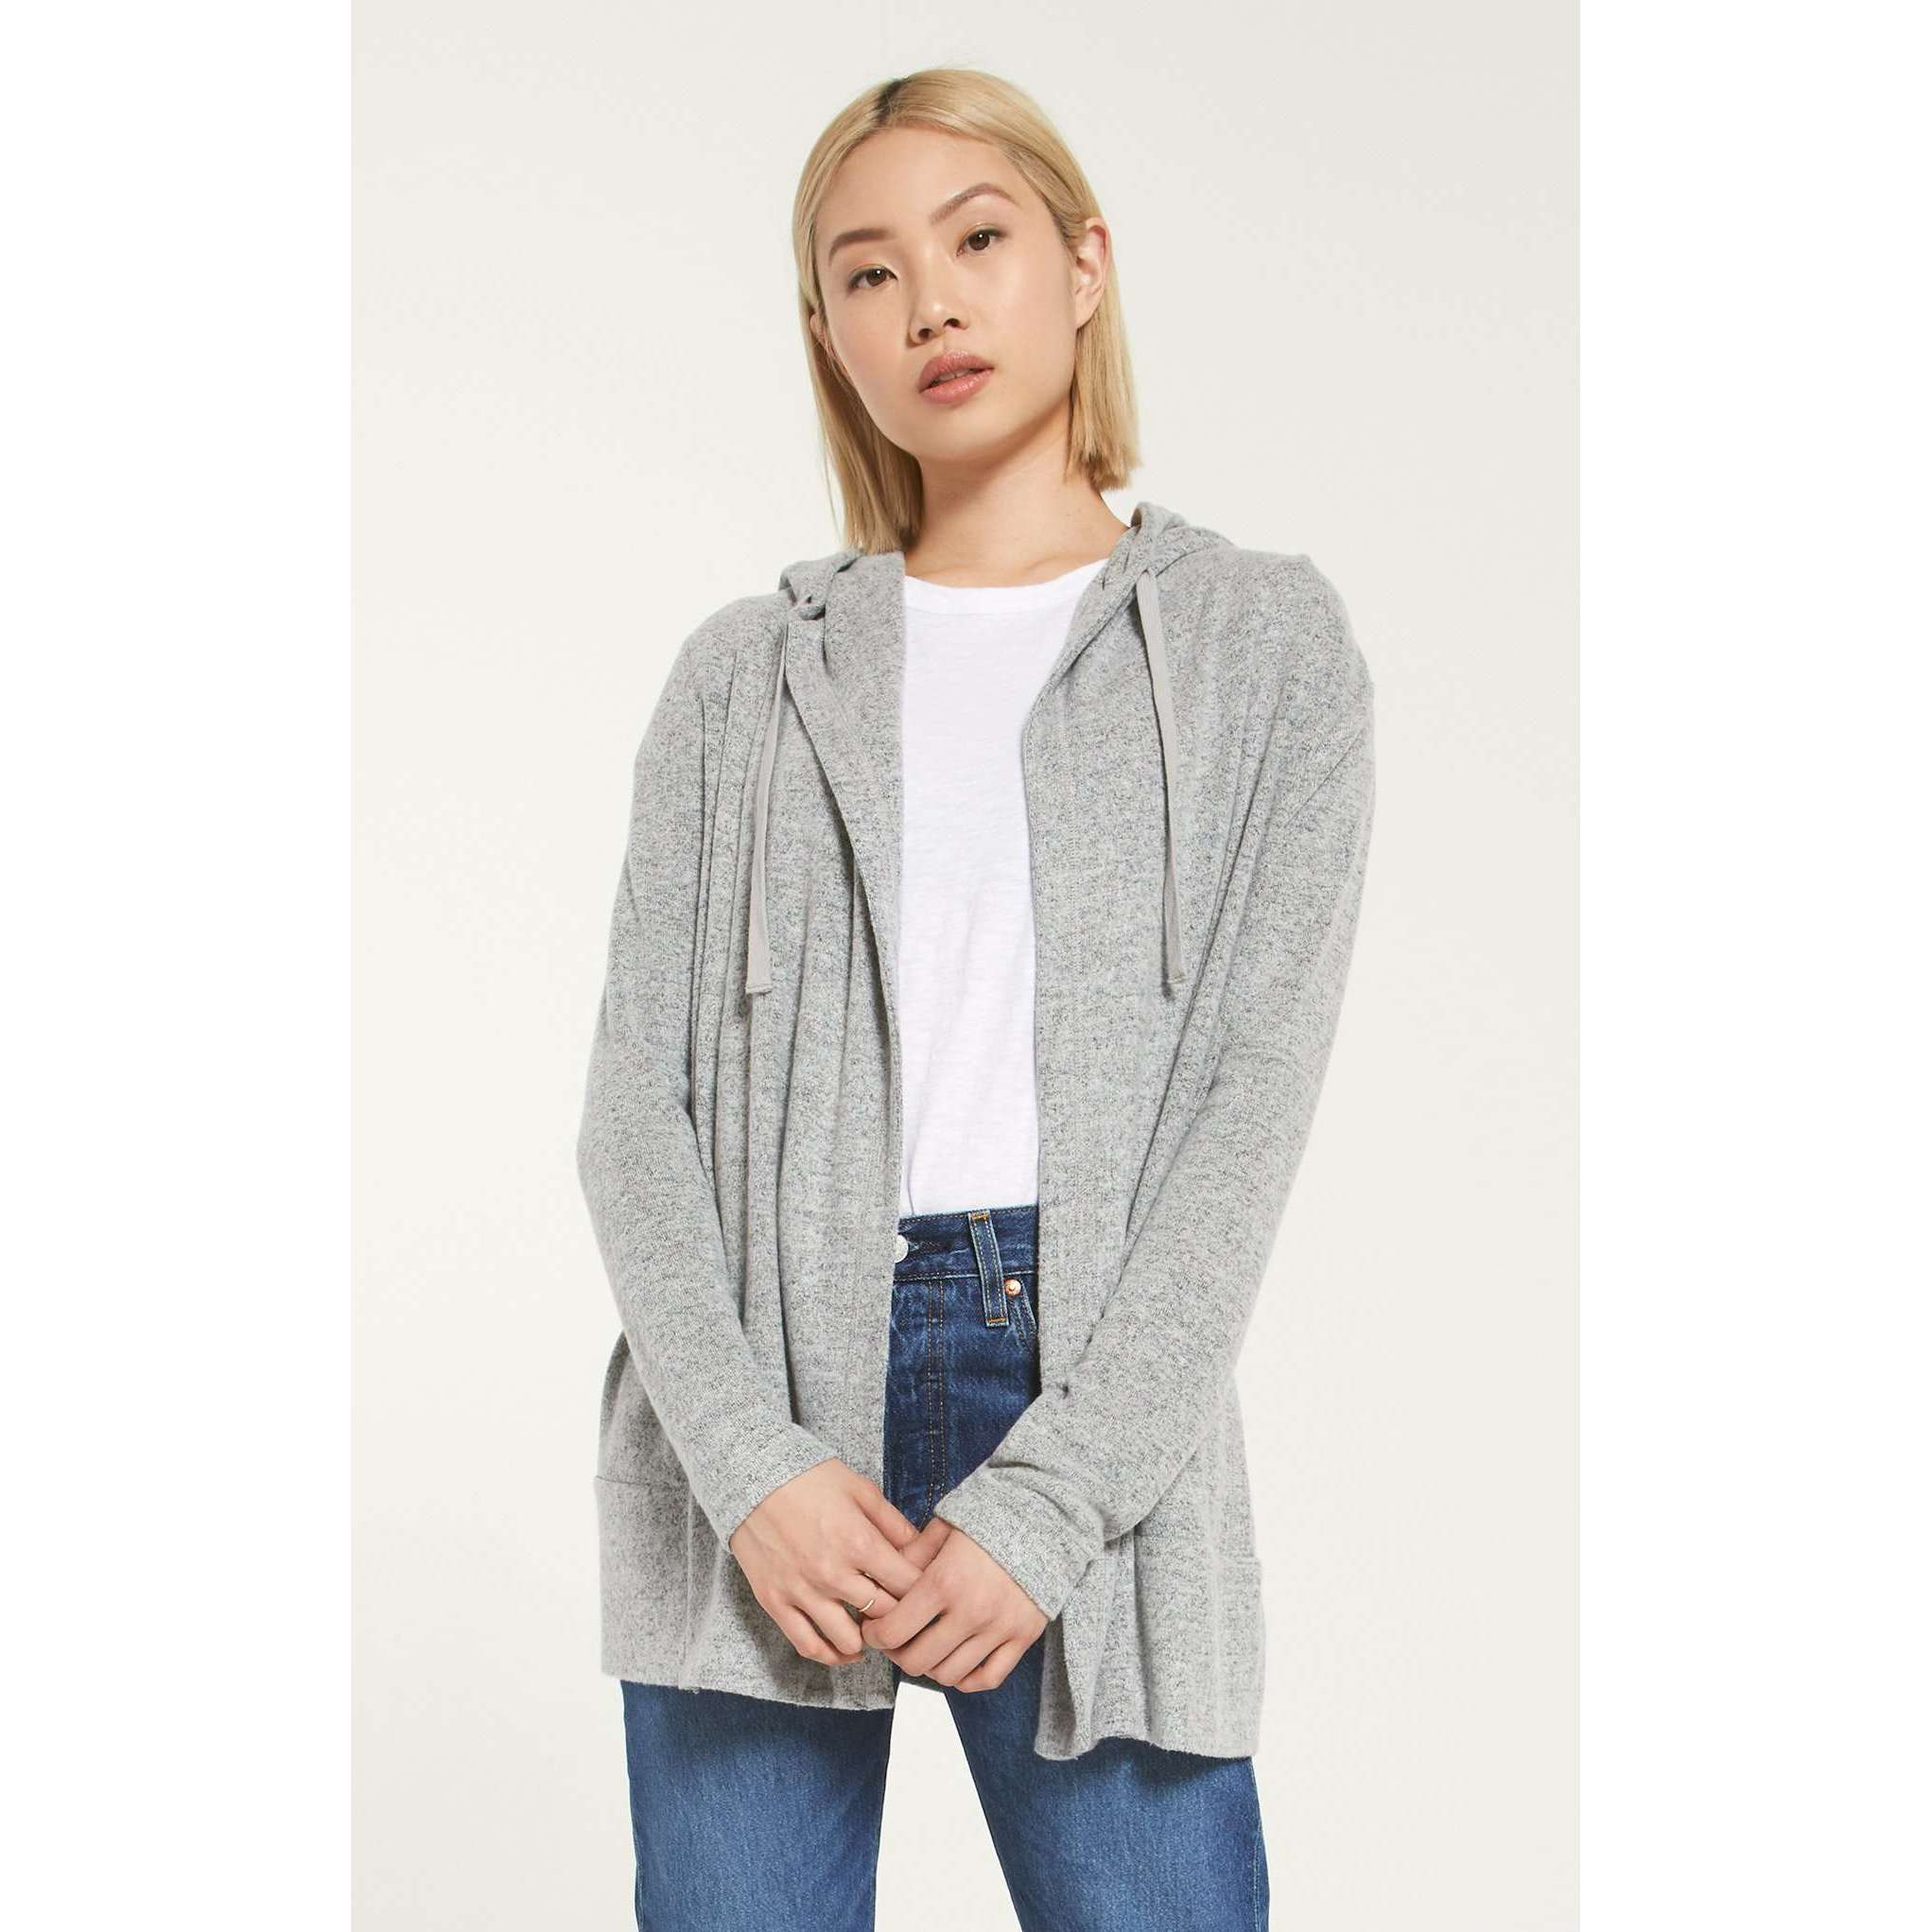 8.28 Boutique:Z-Supply,Z-Supply Clay Marled Cardigan,Outerwear